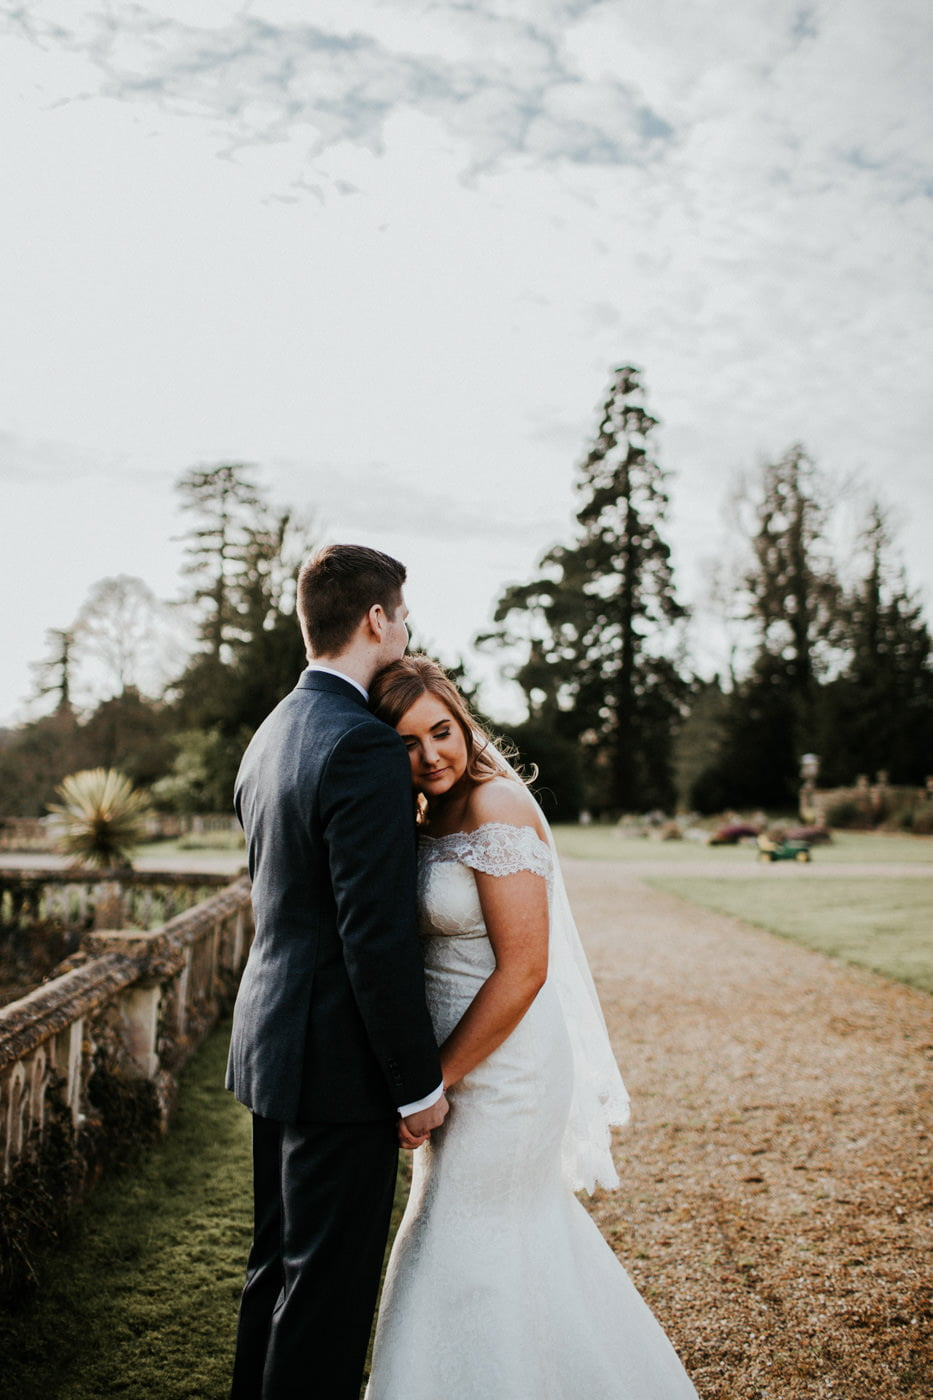 Chloe and Lewis, Orchardleigh House, Somerset 21